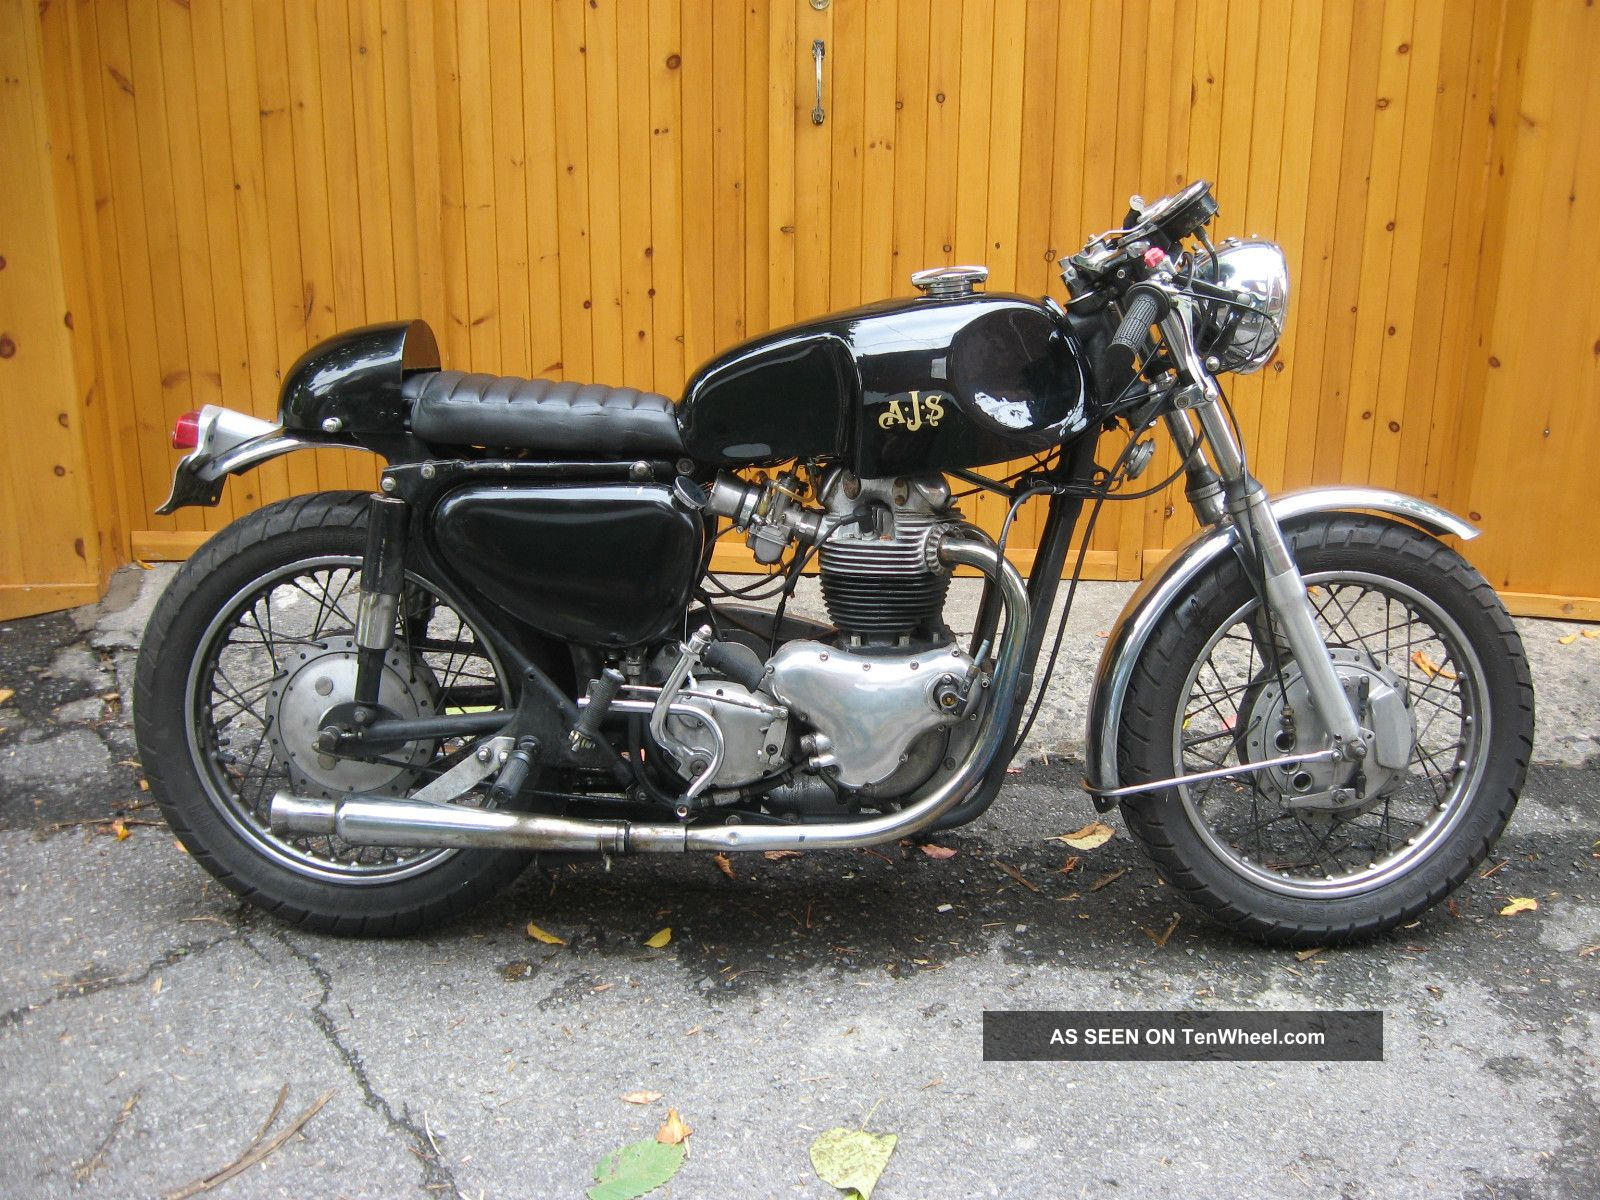 1968 Matchless / Norton G - 15 Cafe Racer 750cc Motorcycle Hybrid Other Makes photo